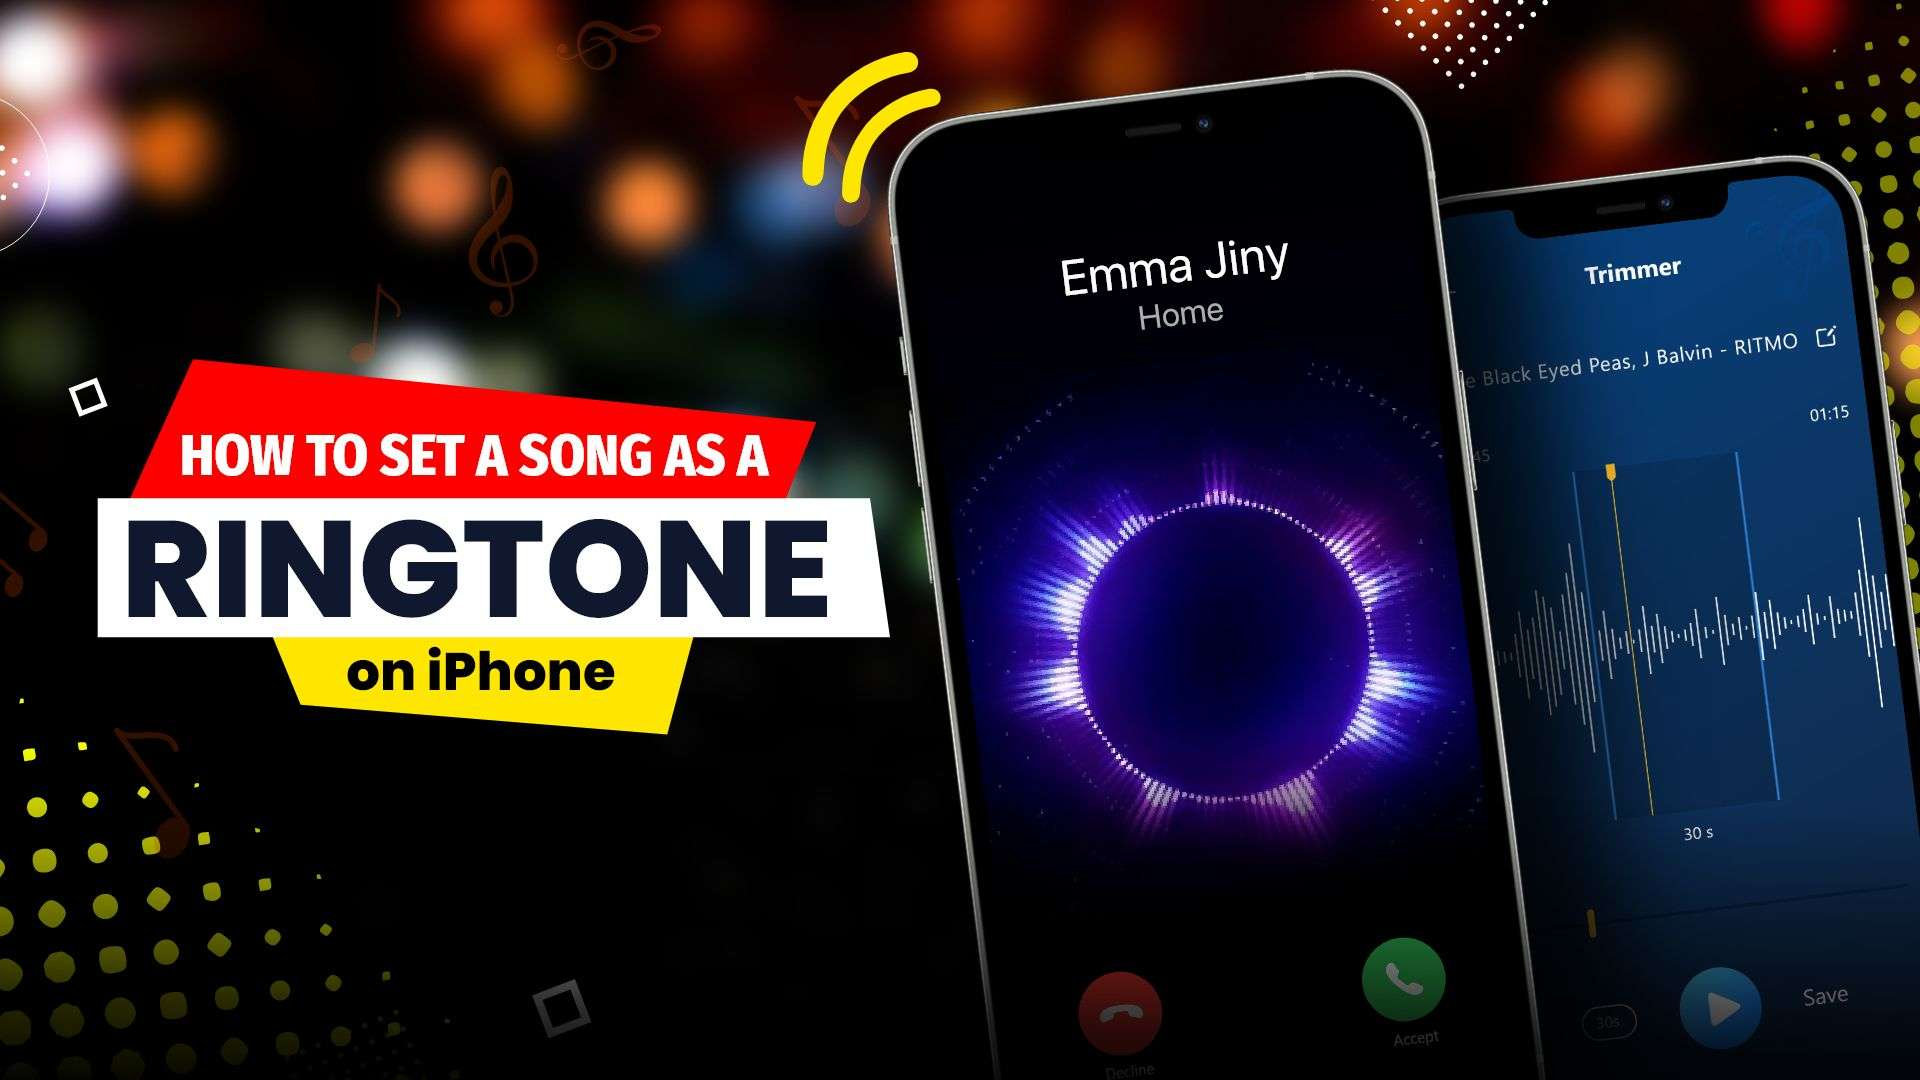 how to set a song as a ringtone on iPhone